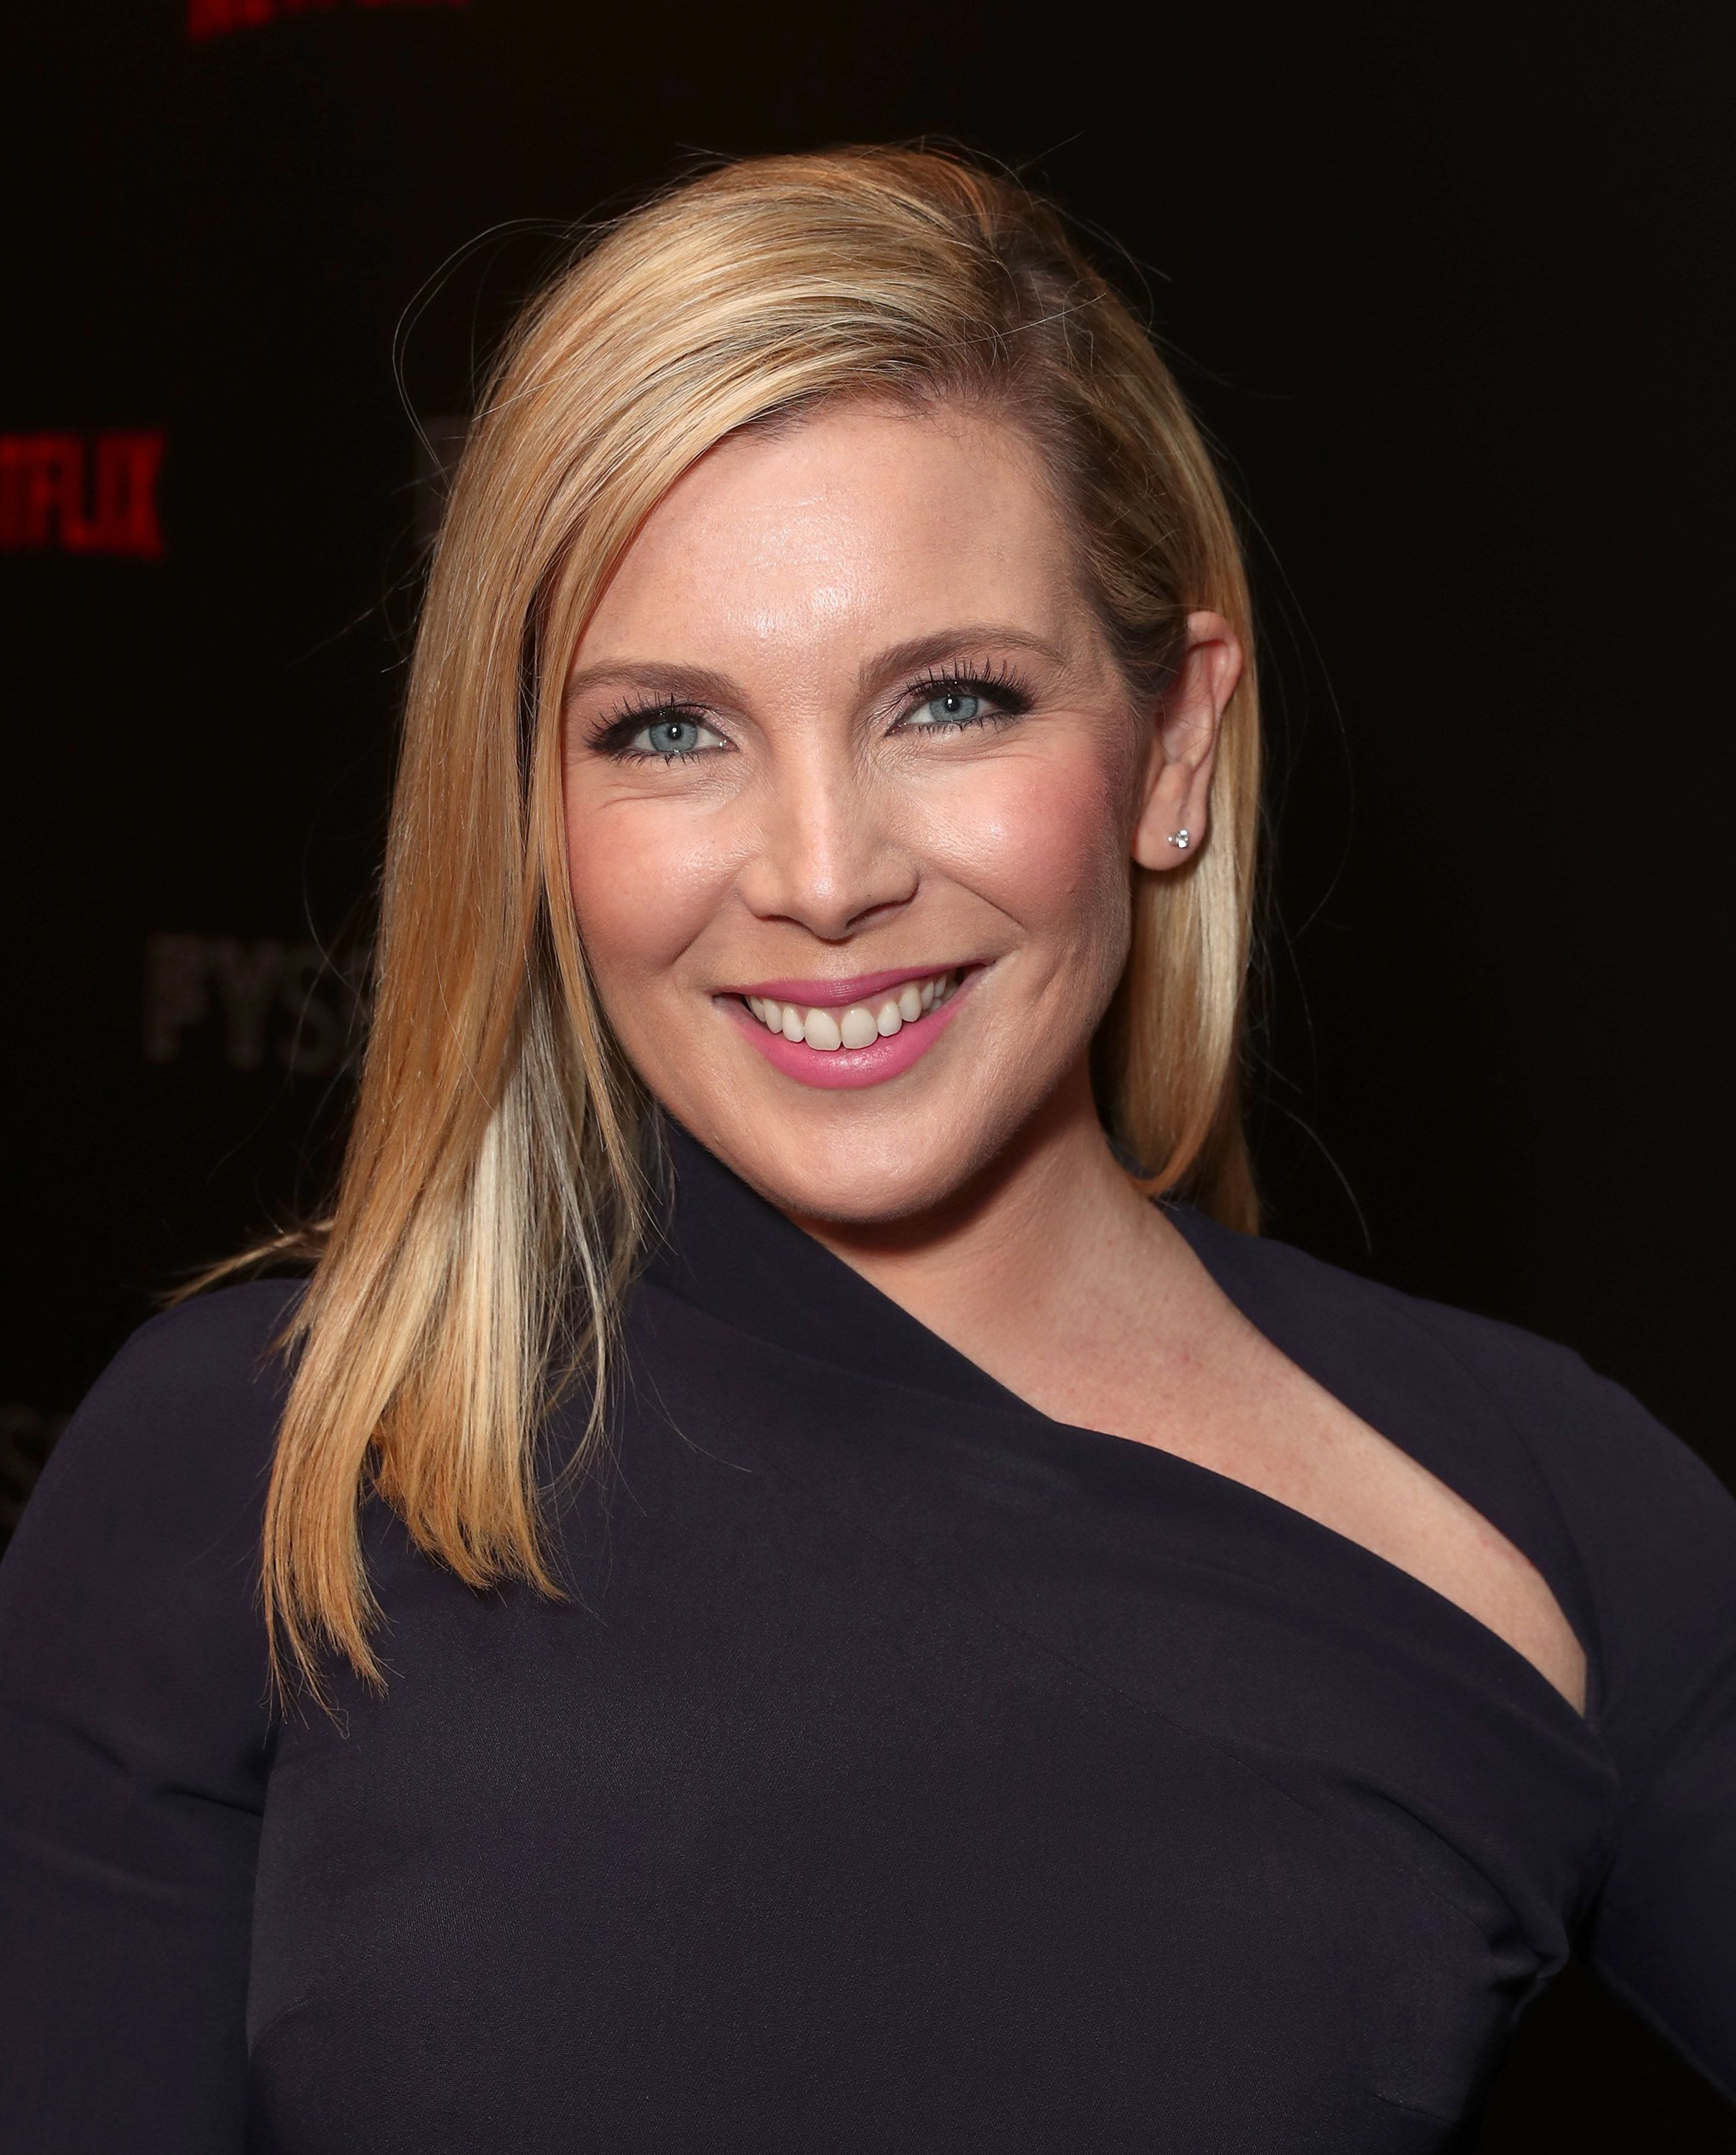 BEVERLY HILLS, CA - MAY 07:  June Diane Raphael attends Netflix's FYSEE Kick-Off Event at Netflix FYSee Space on May 7, 2017 in Beverly Hills, California.  (Photo by Todd Williamson/Getty Images)